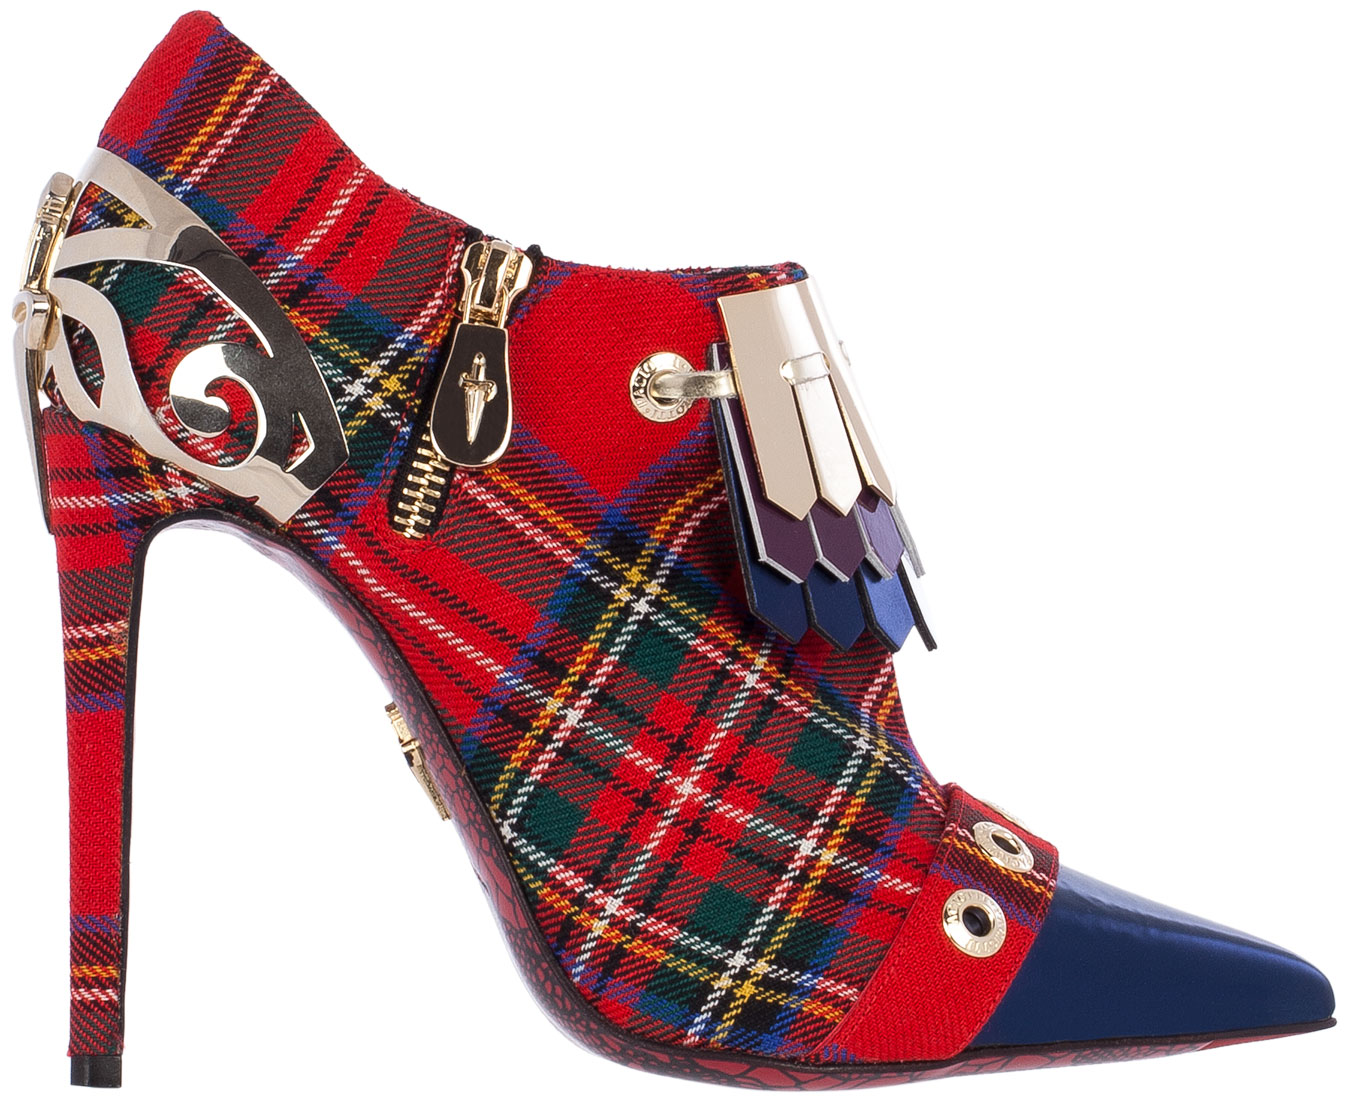 3a88e884845 Head over Heels - Stunning Women s Shoes. Cesare Paciotti Tartan Ankle  Boots Spring 2015